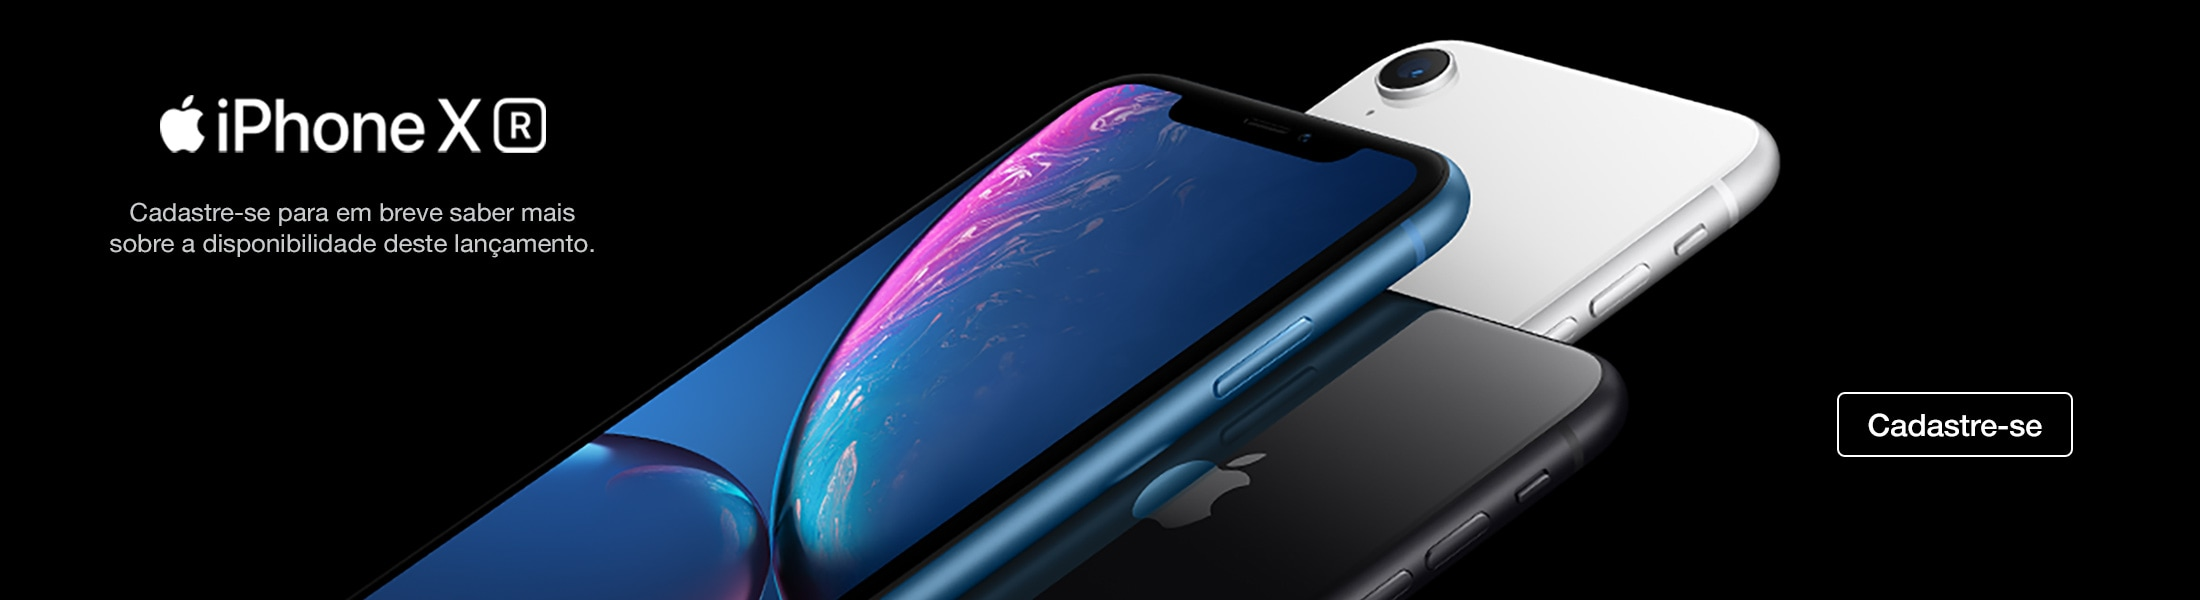 Banner do iPhone XR